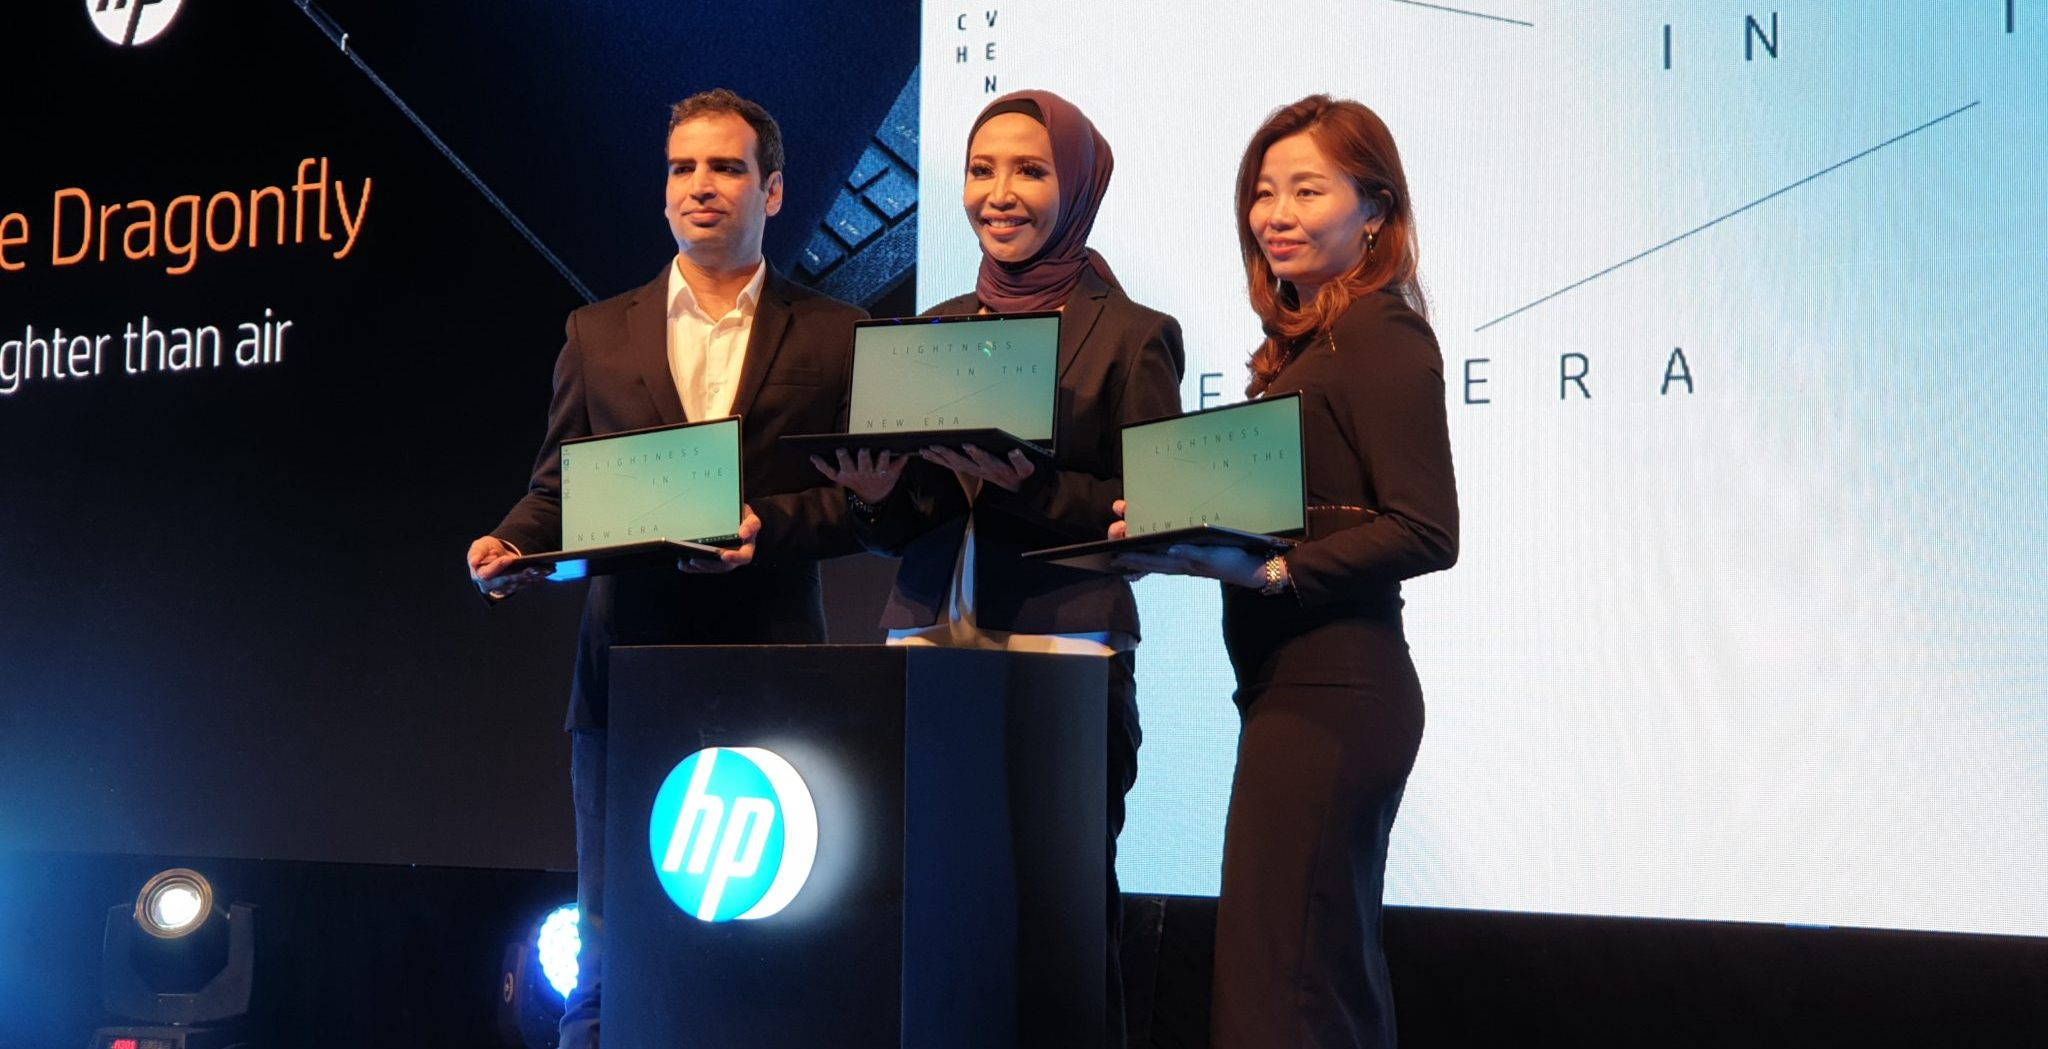 HP Elite Dragonfly and Spectre x360